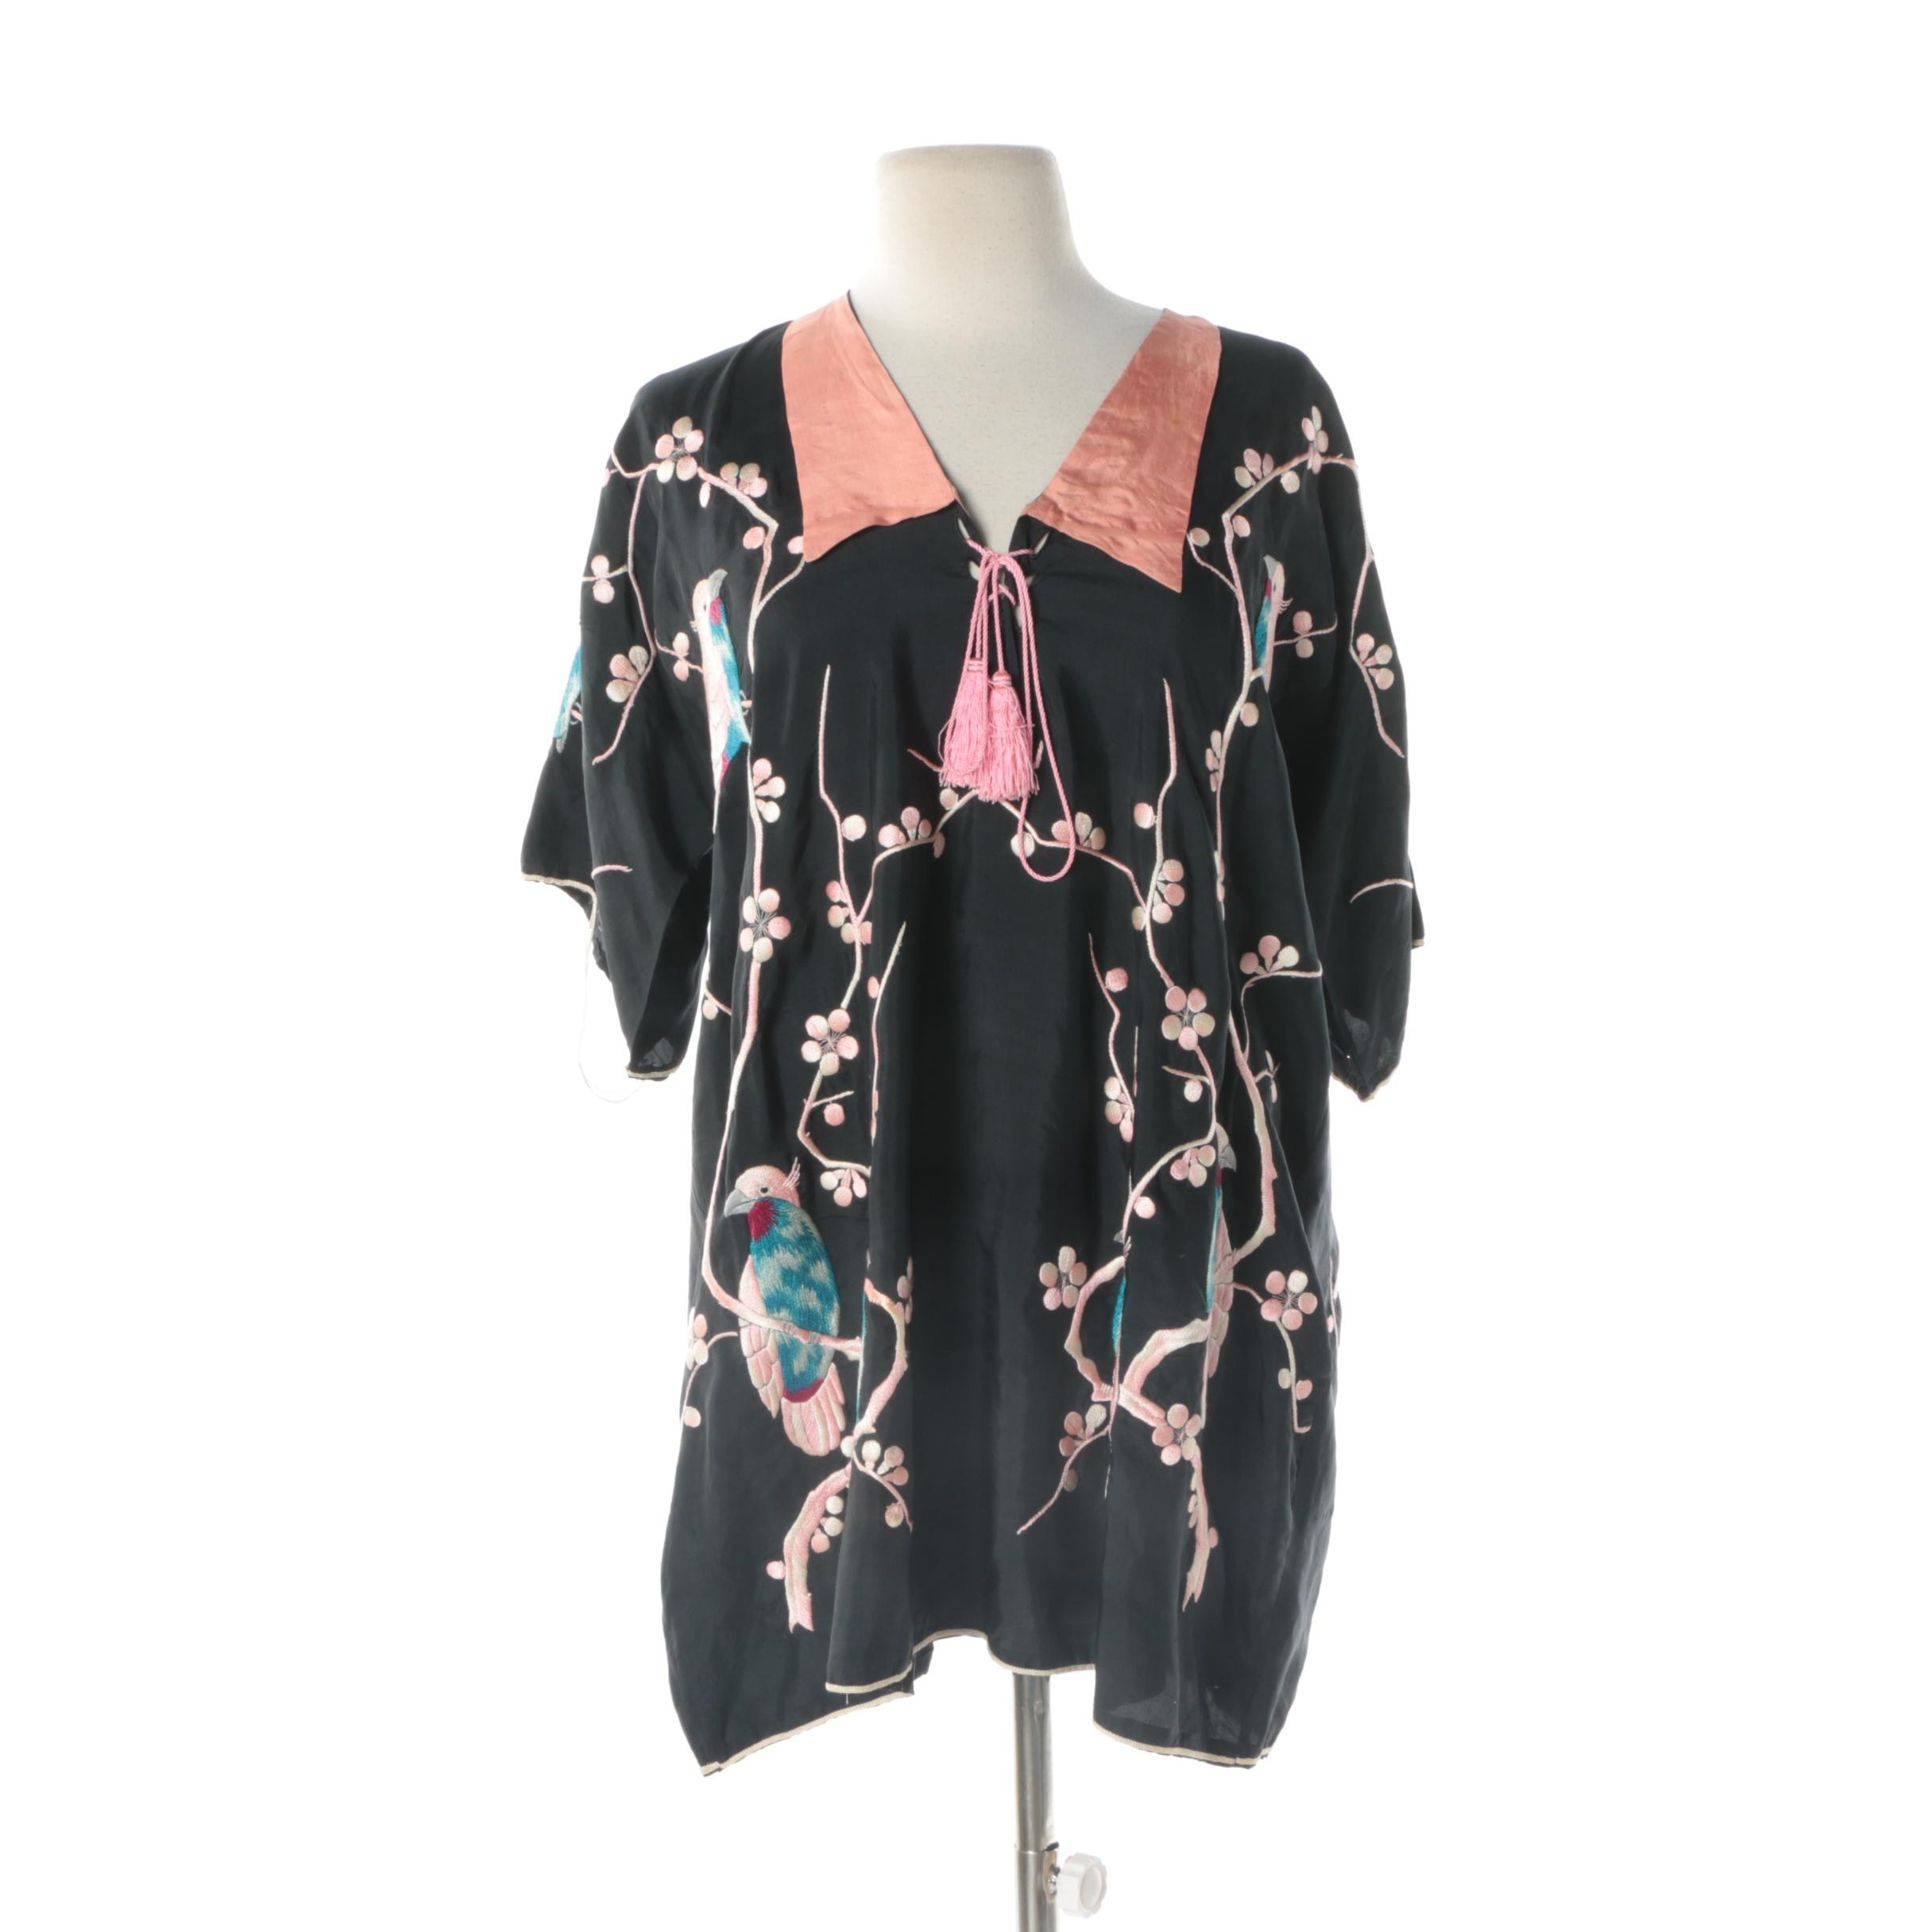 Women's Vintage Japanese Black Silk Top with Embroidered Cherry Blossoms